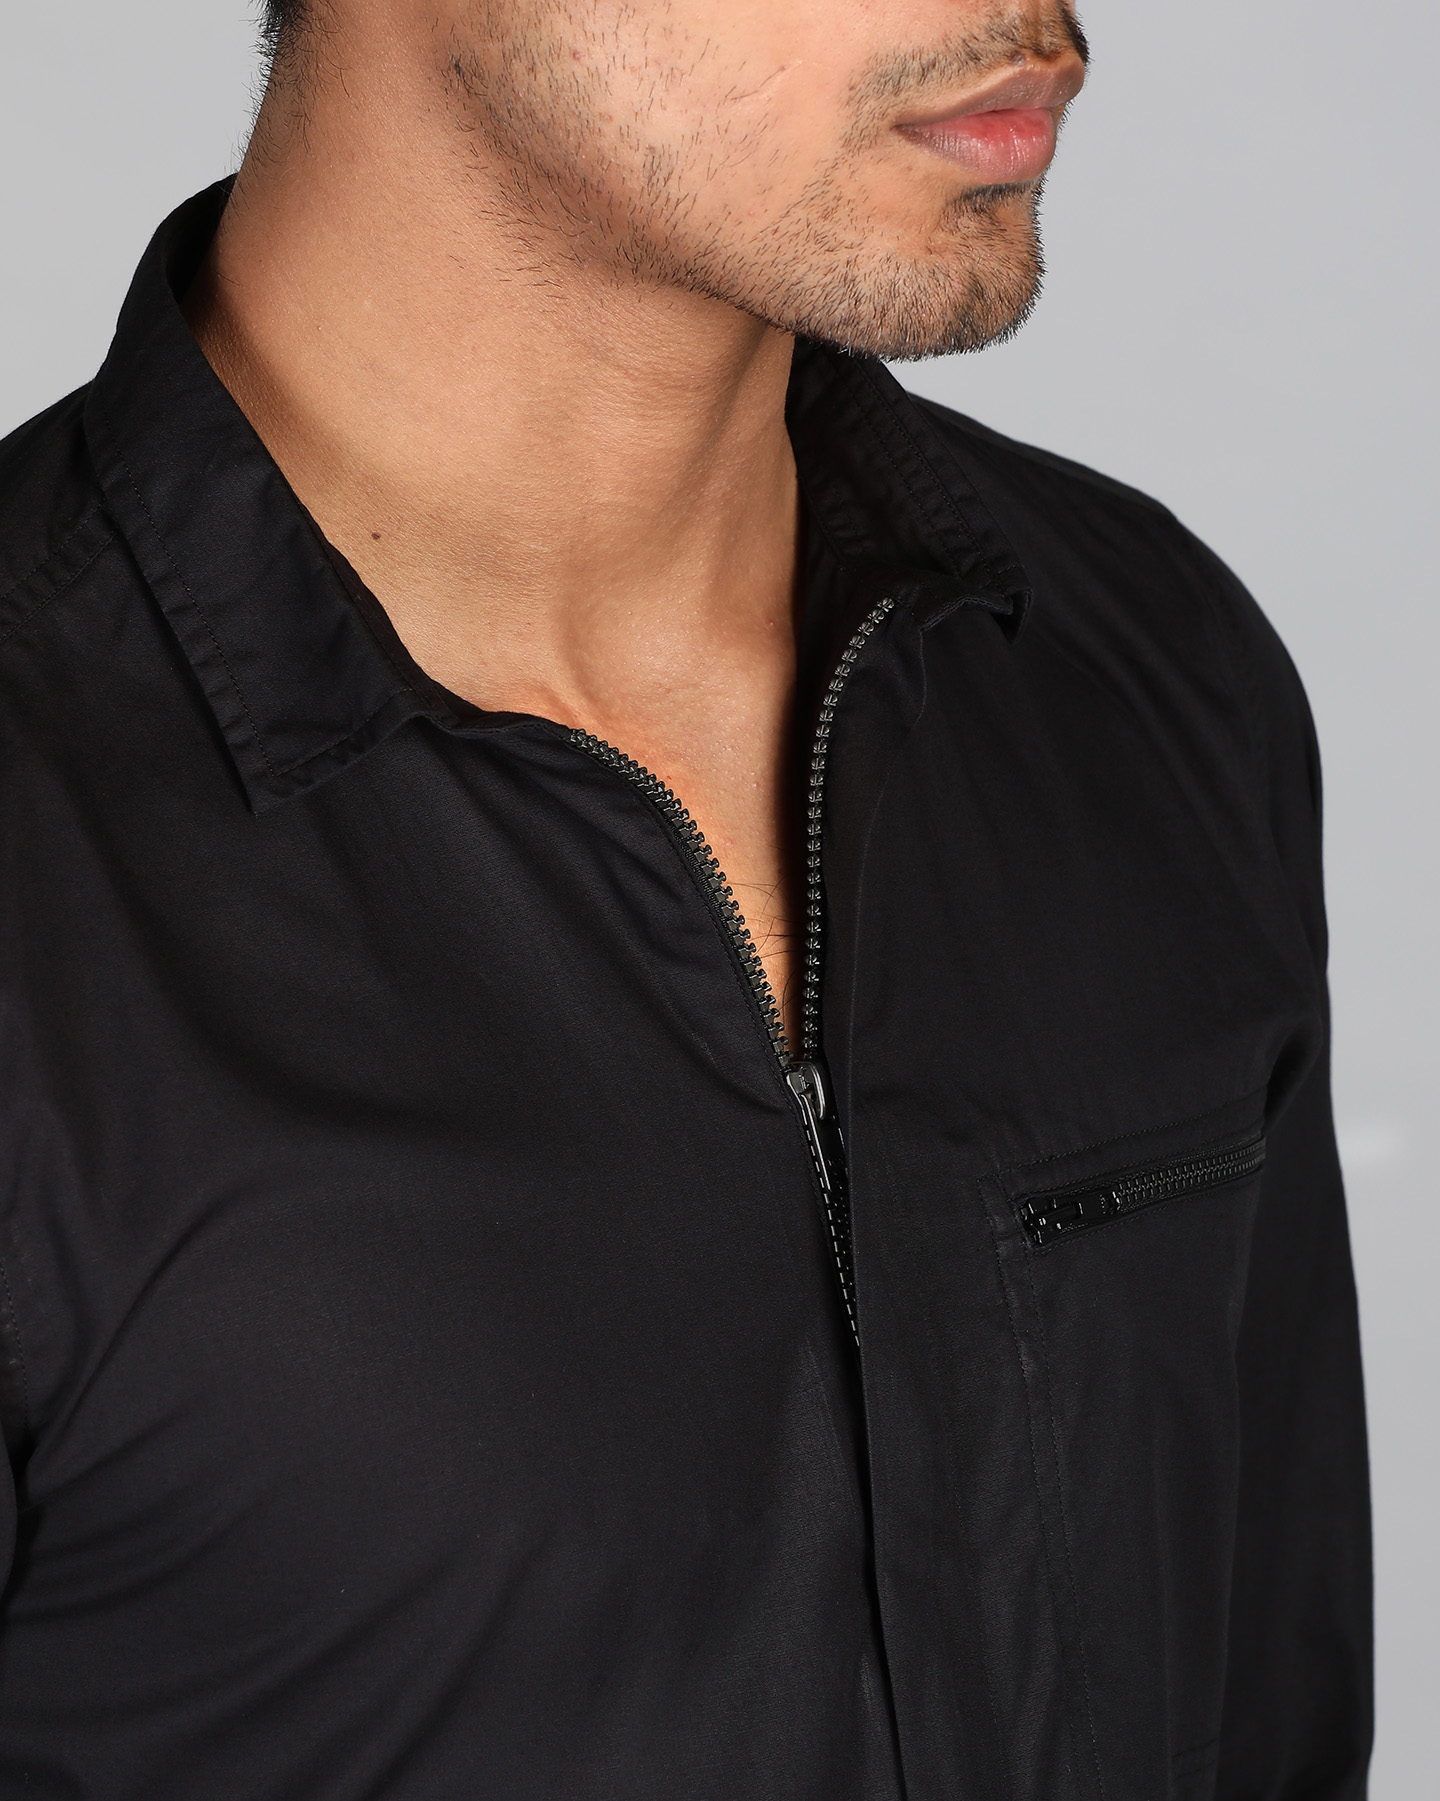 Onyx Black Zipper Shirt